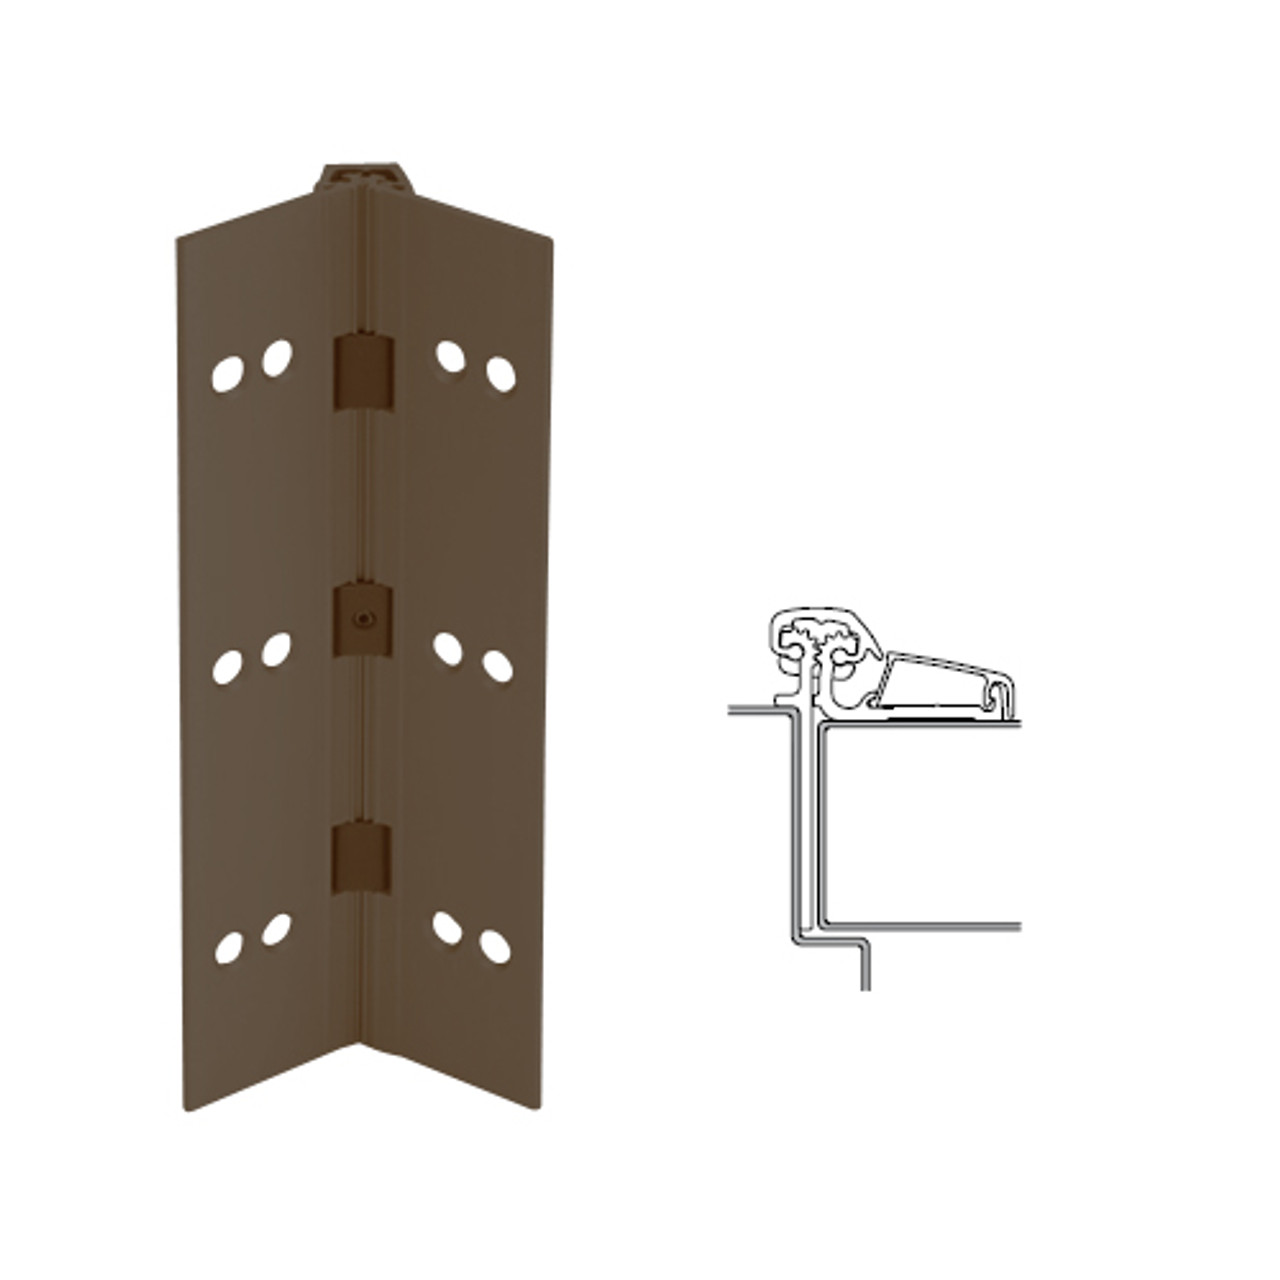 054XY-313AN-95-SECWDHM IVES Adjustable Half Surface Continuous Geared Hinges with Security Screws - Hex Pin Drive in Dark Bronze Anodized